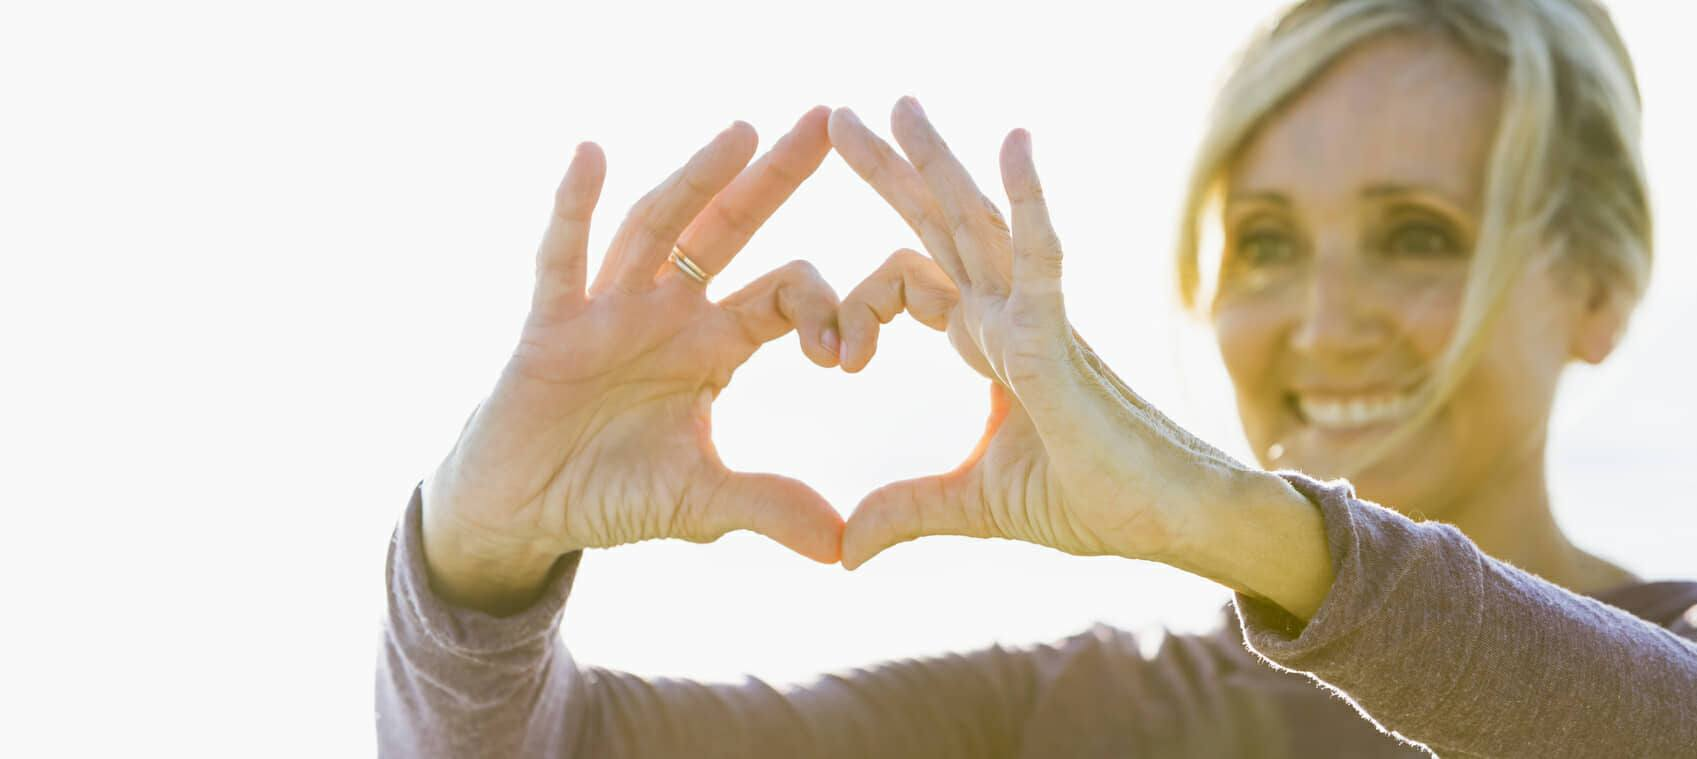 6 Heart Health Facts Every Woman Should Know